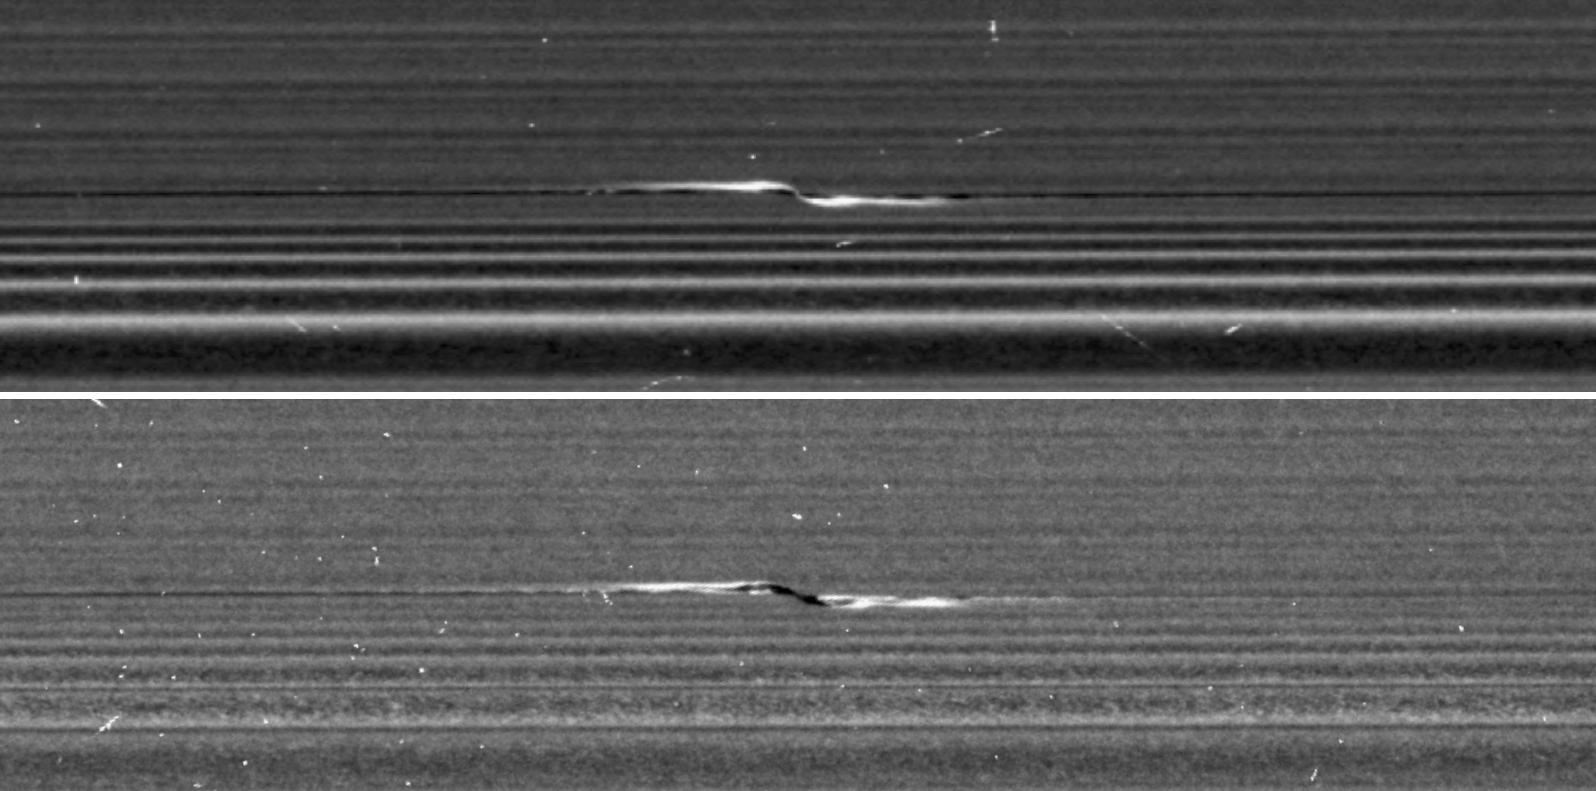 Space Images | Cassini Targets a Propeller in Saturn's A Ring